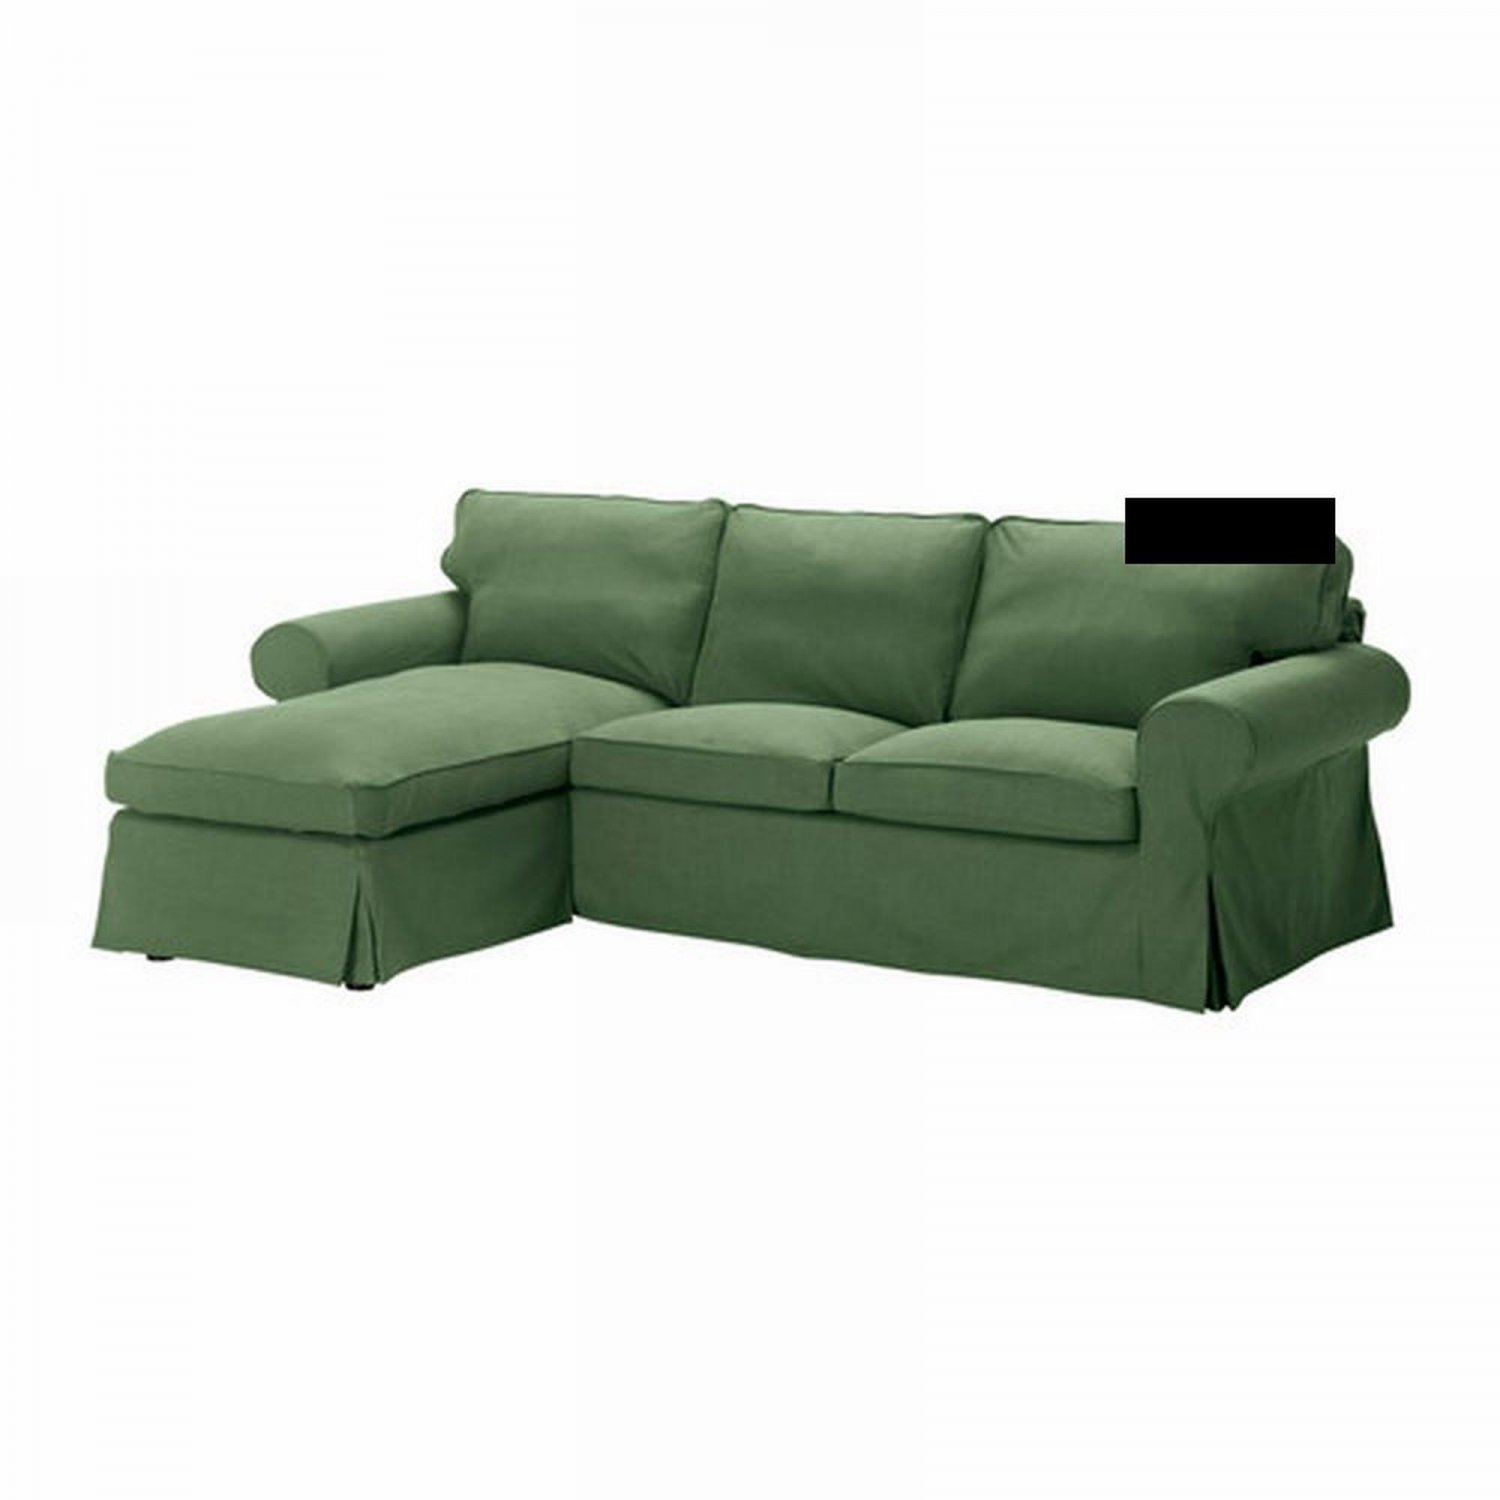 Ikea ektorp 2 seat loveseat w chaise cover 3 seat for Sectional slipcovers canada